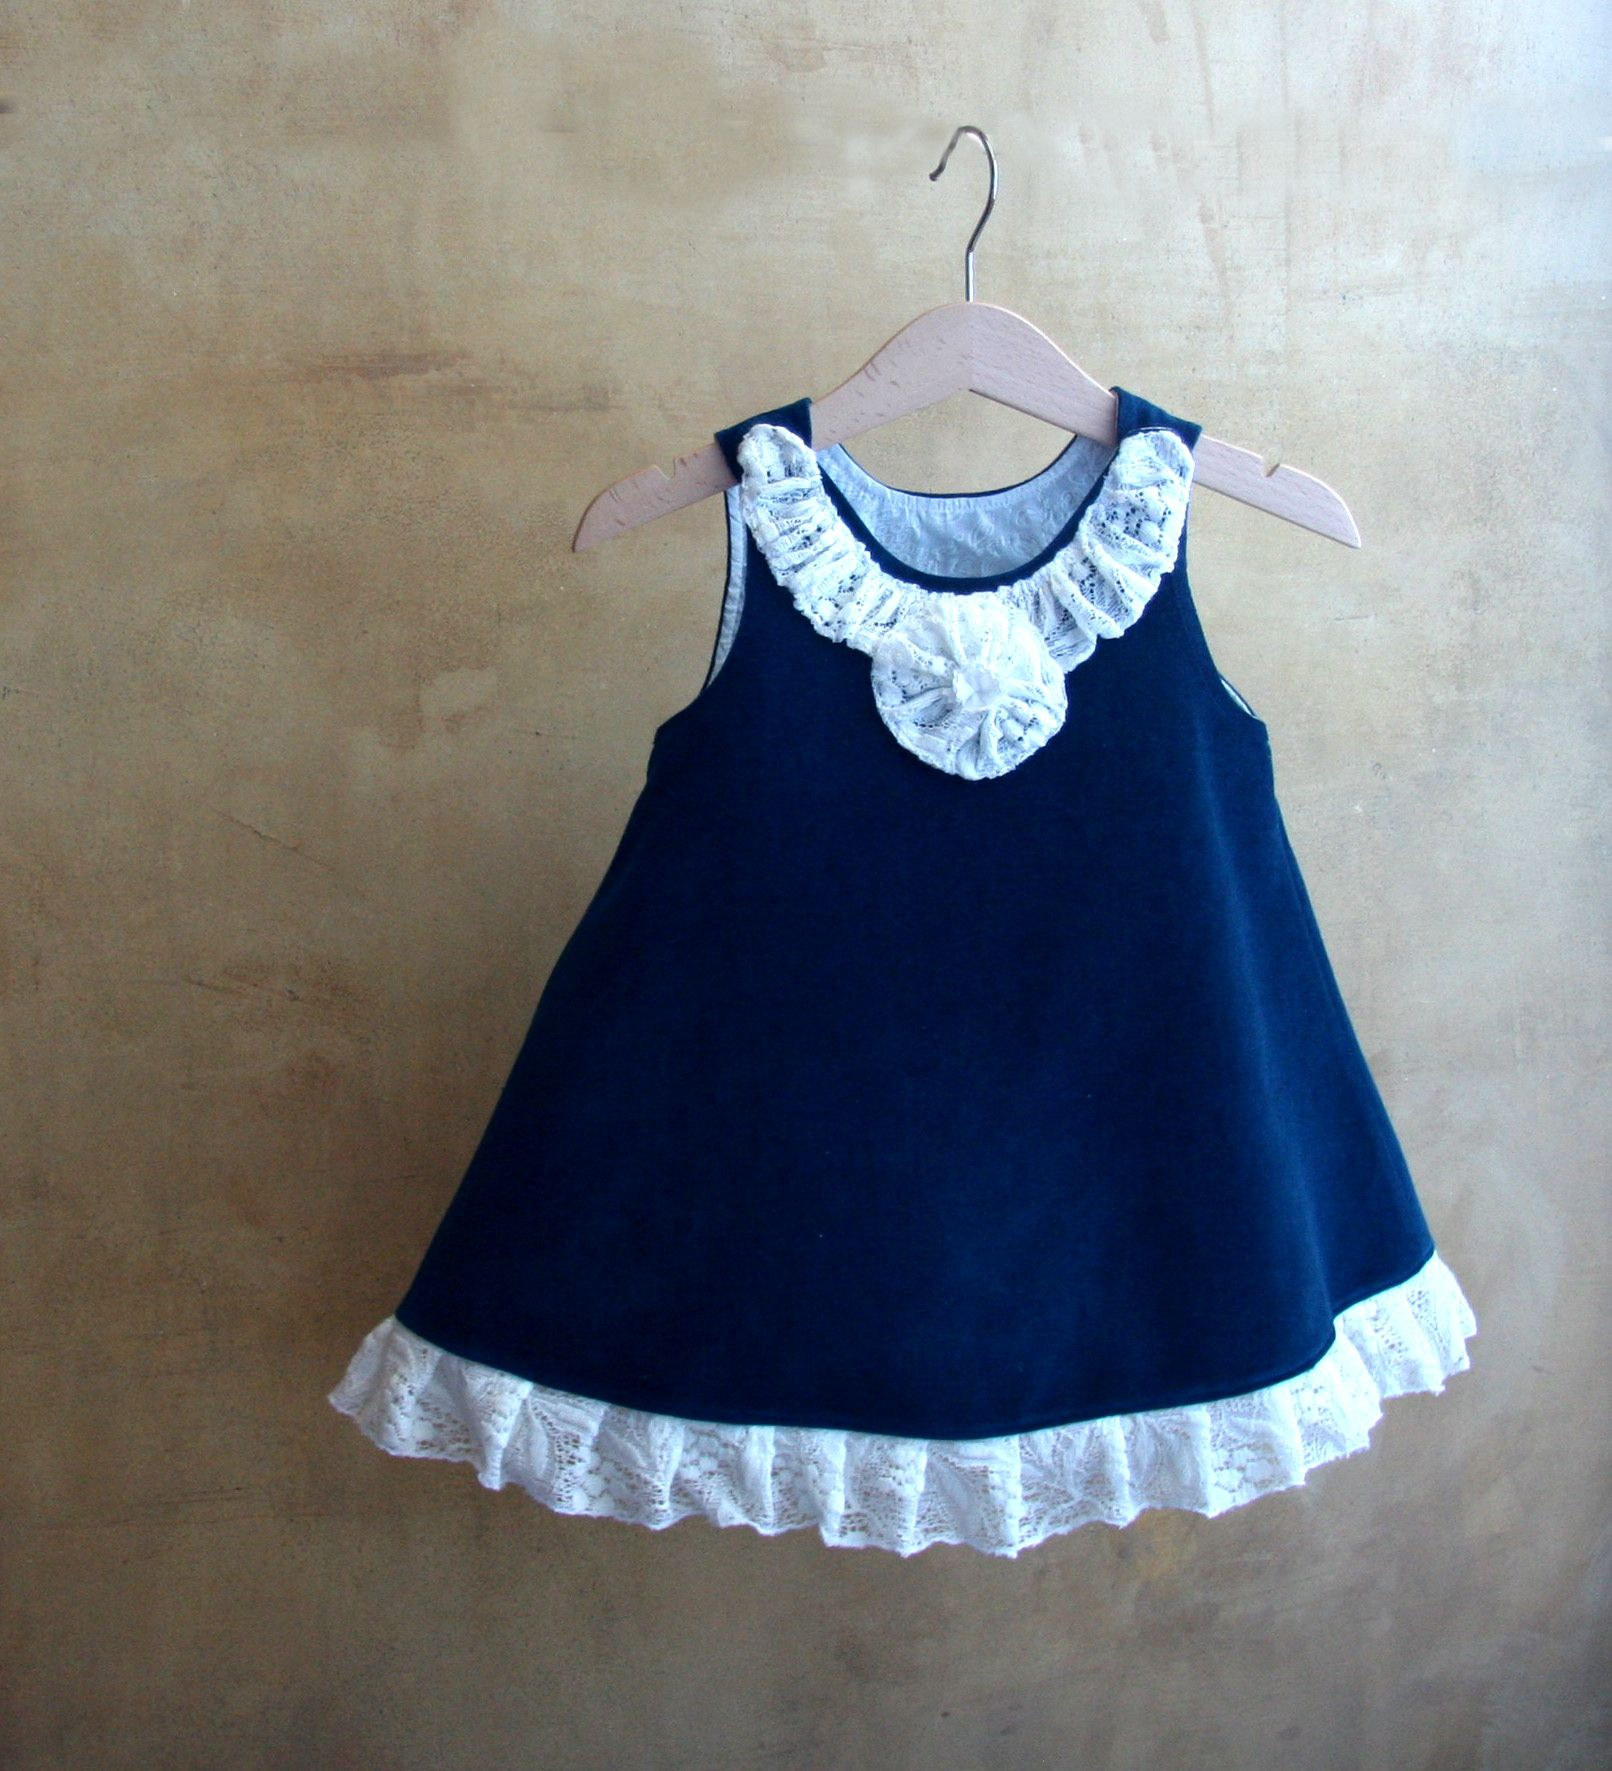 CLICK HERE TO BUY Blue velvet and white lace too chic s